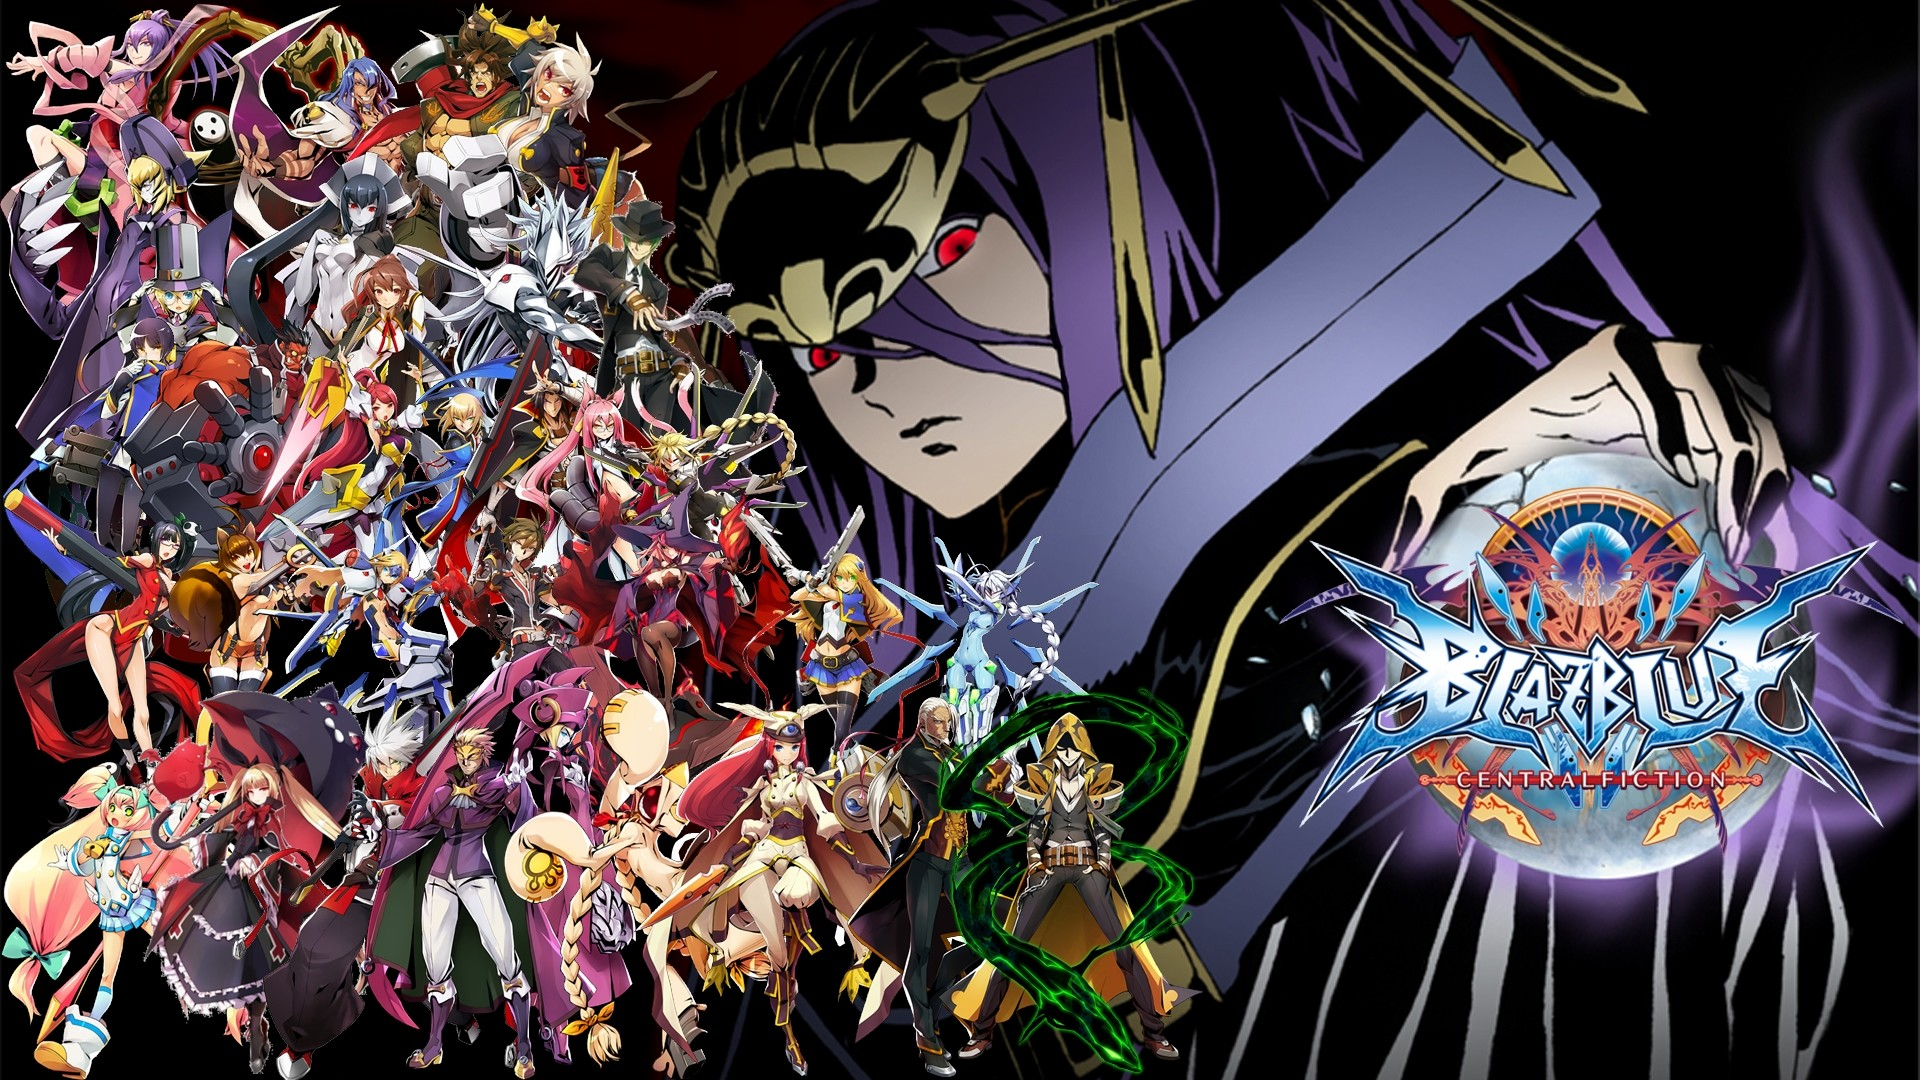 Res: 1920x1080, BlazBlue Centralfiction HD Wallpaper | Background Image |  |  ID:862946 - Wallpaper Abyss